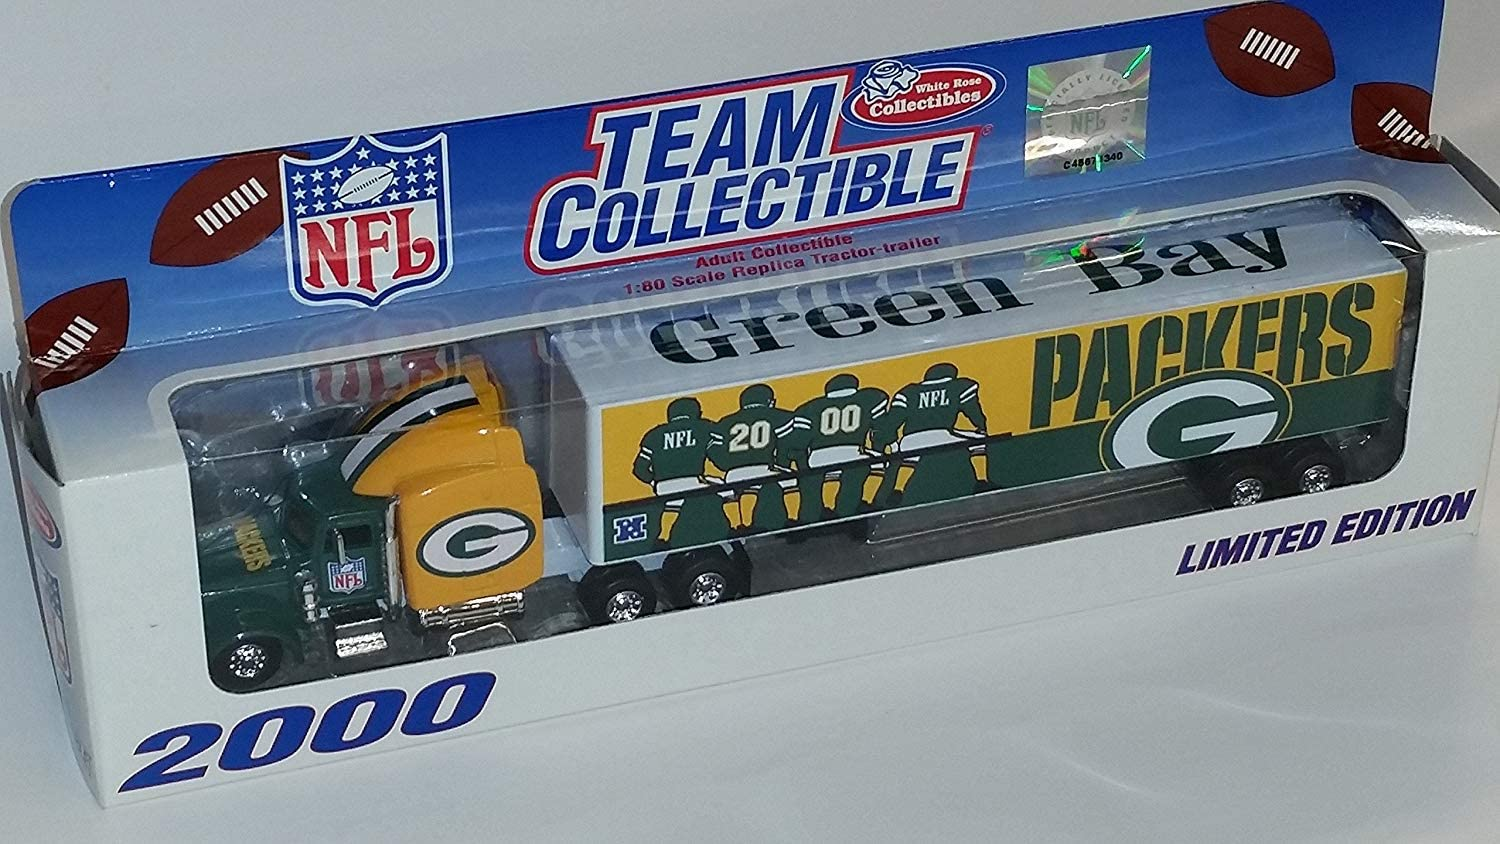 B00020SO56 Green Bay Packers 2000 NFL Limited Edition Die-Cast 1:80 Tractor-Trailer Semi Truck Collectible 71G2T-HoLdL